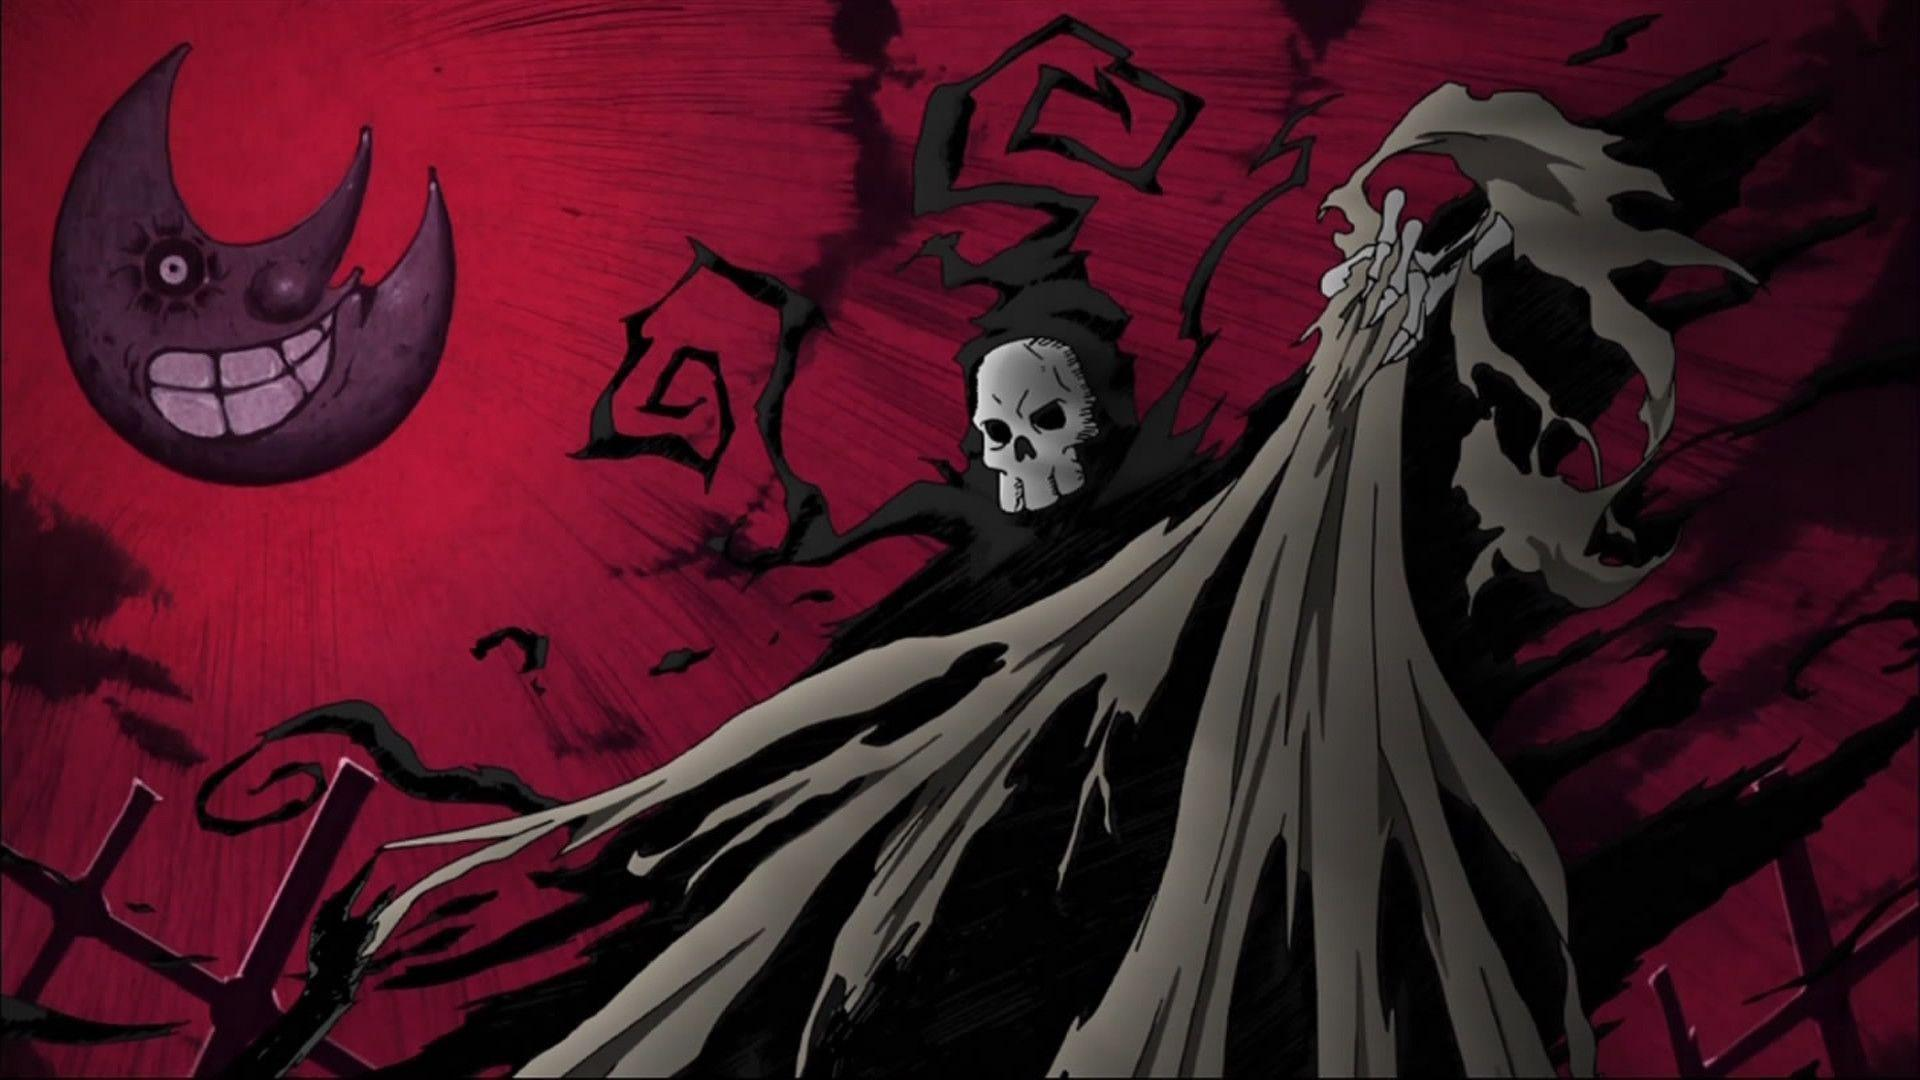 Soul Eater Wallpapers - Wallpaper Cave